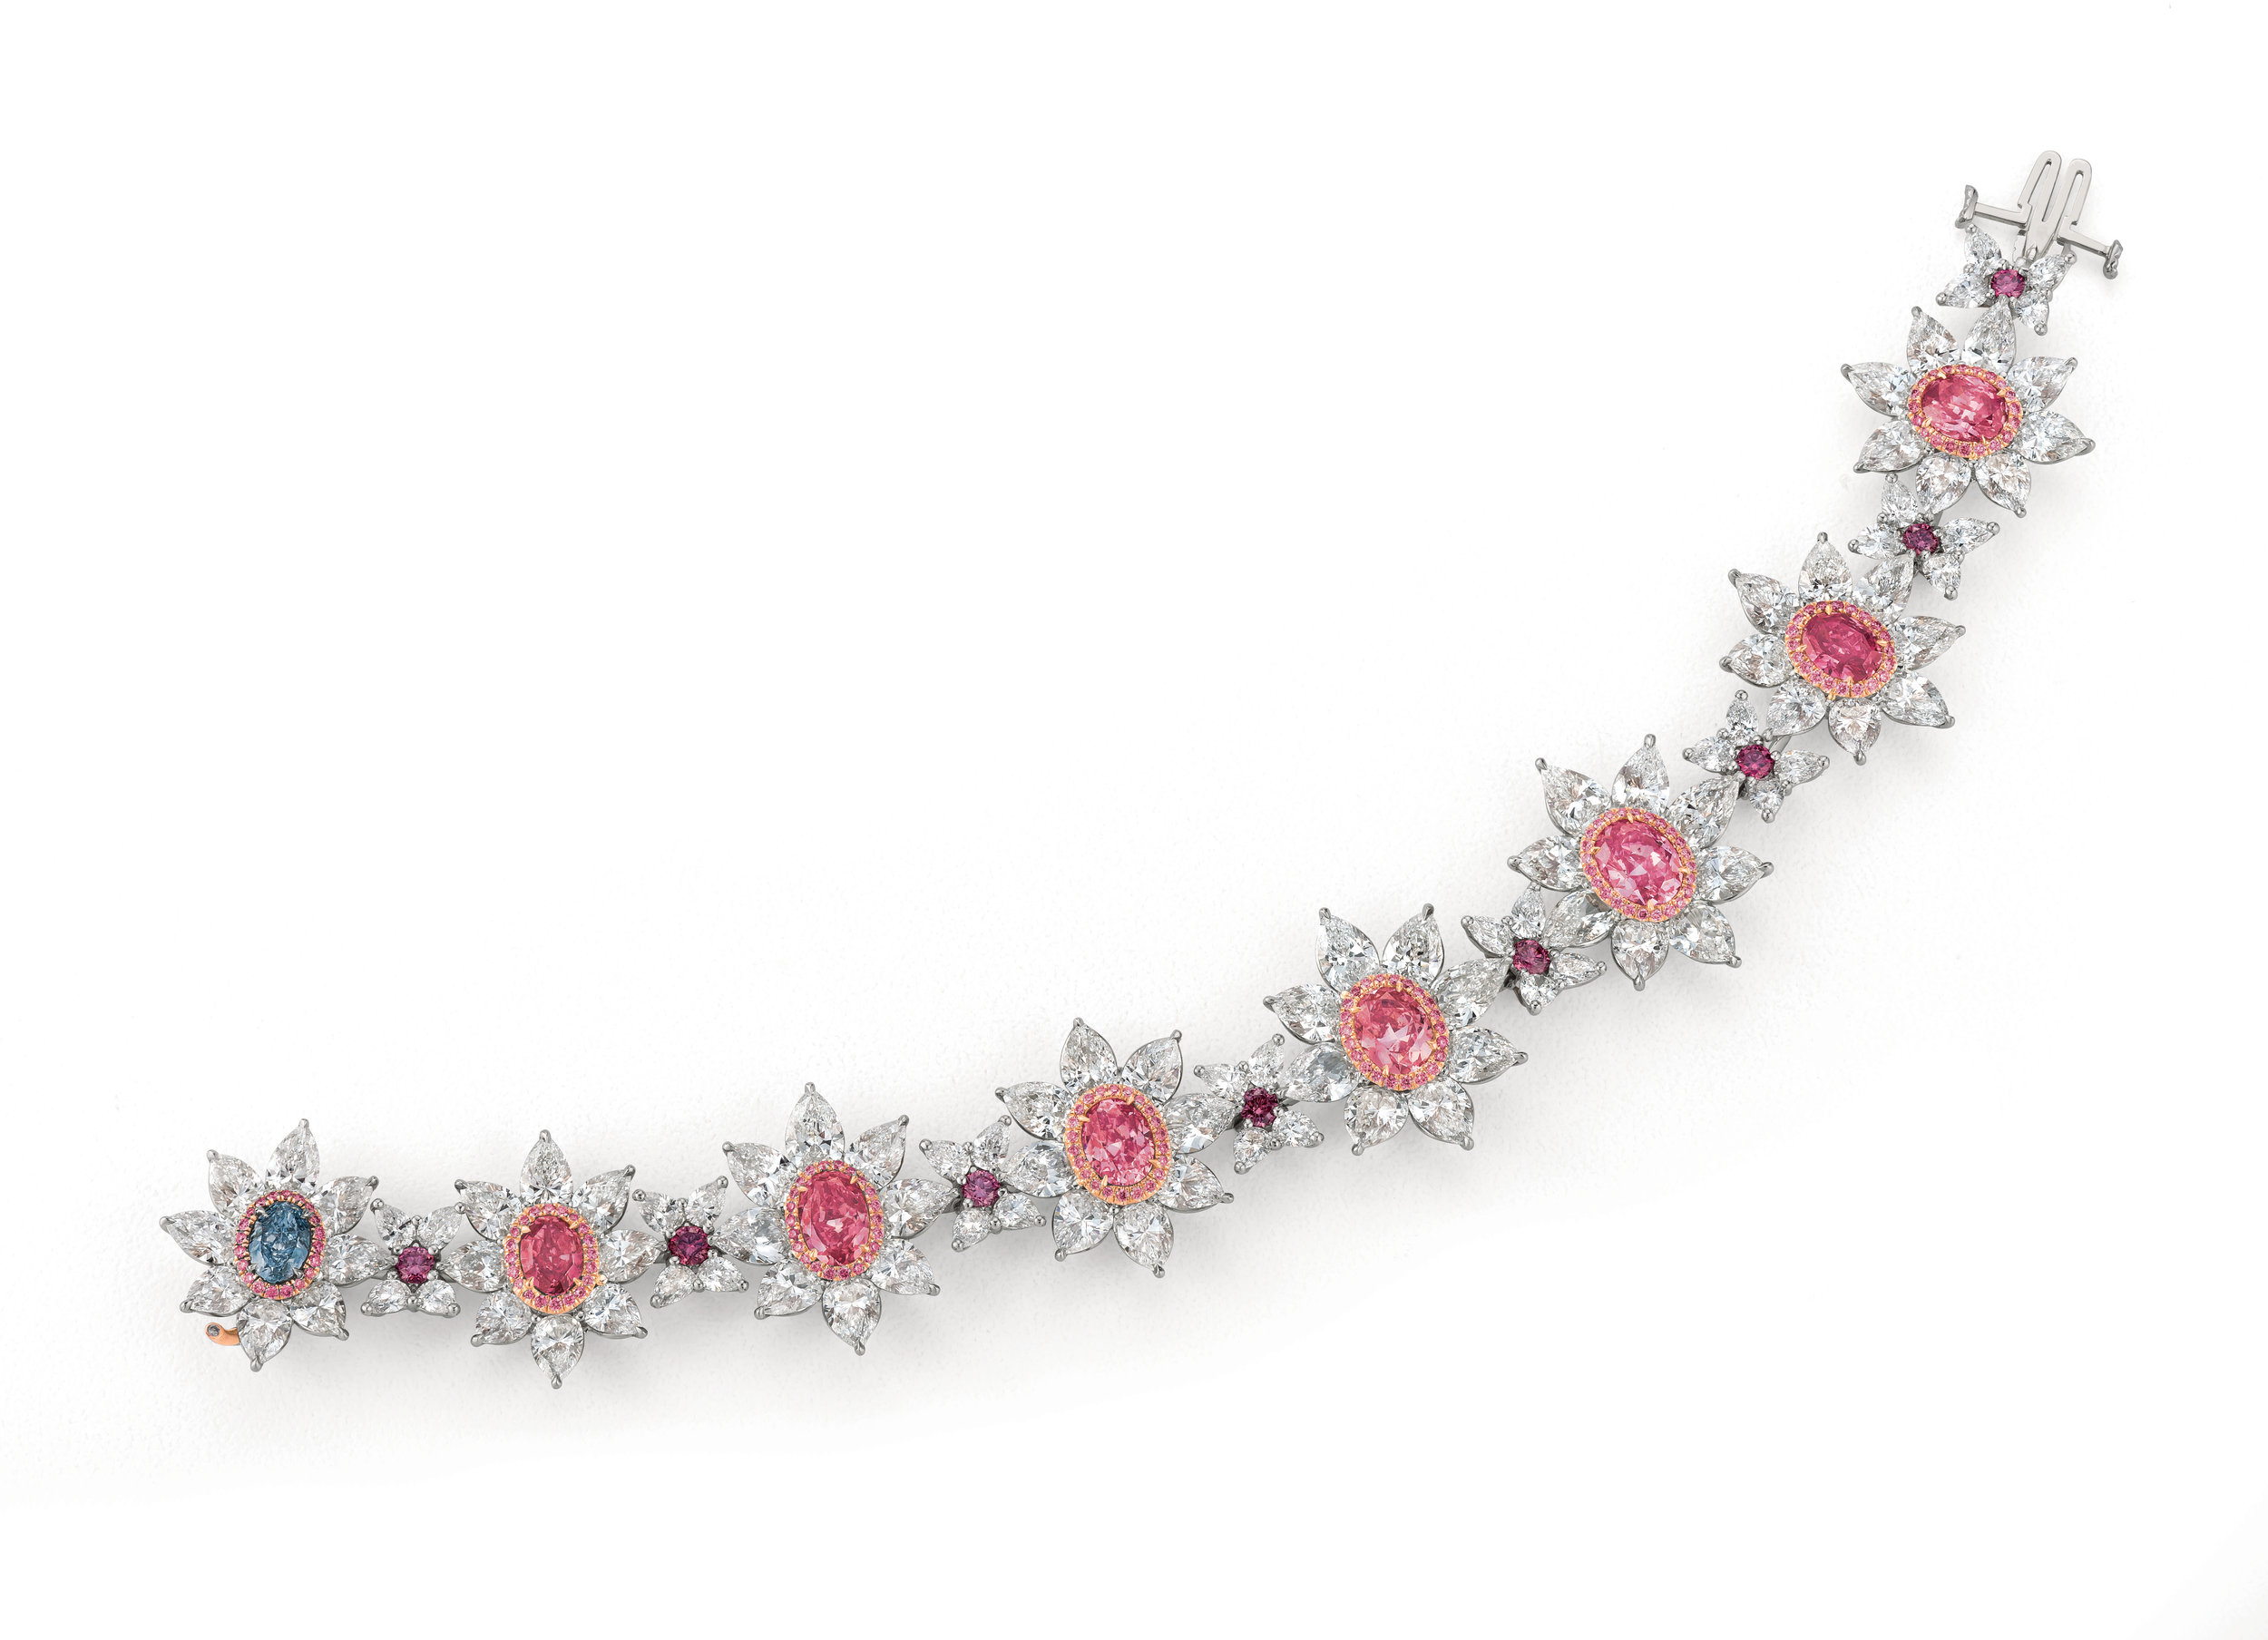 The Magnificent 8 Bracelet featuring 5 incredibly rare argyle intense to vivid purplish pink diamonds, 2 vivid pink diamonds and 1 vivid blue in a flower designer bracelet. Designed by Scott West